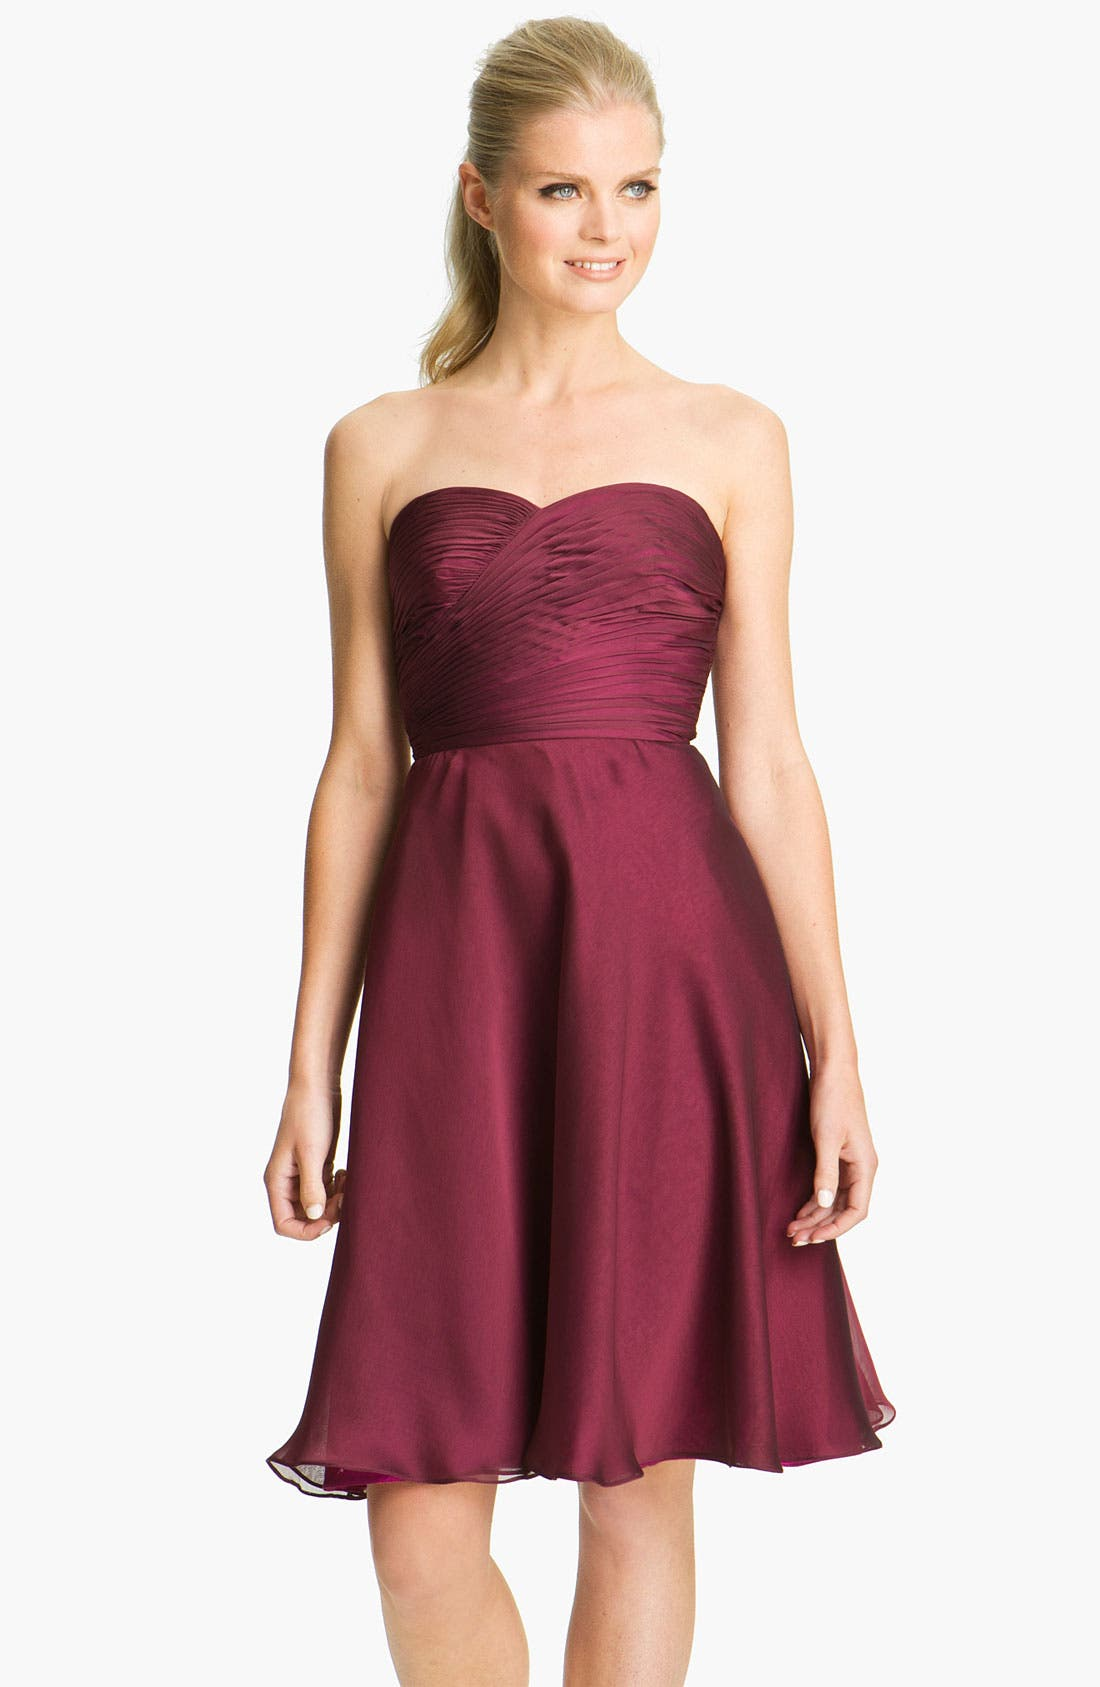 Main Image - ML Monique Lhuillier Bridesmaids Pleated Chiffon Sweetheart Dress (Nordstrom Exclusive)